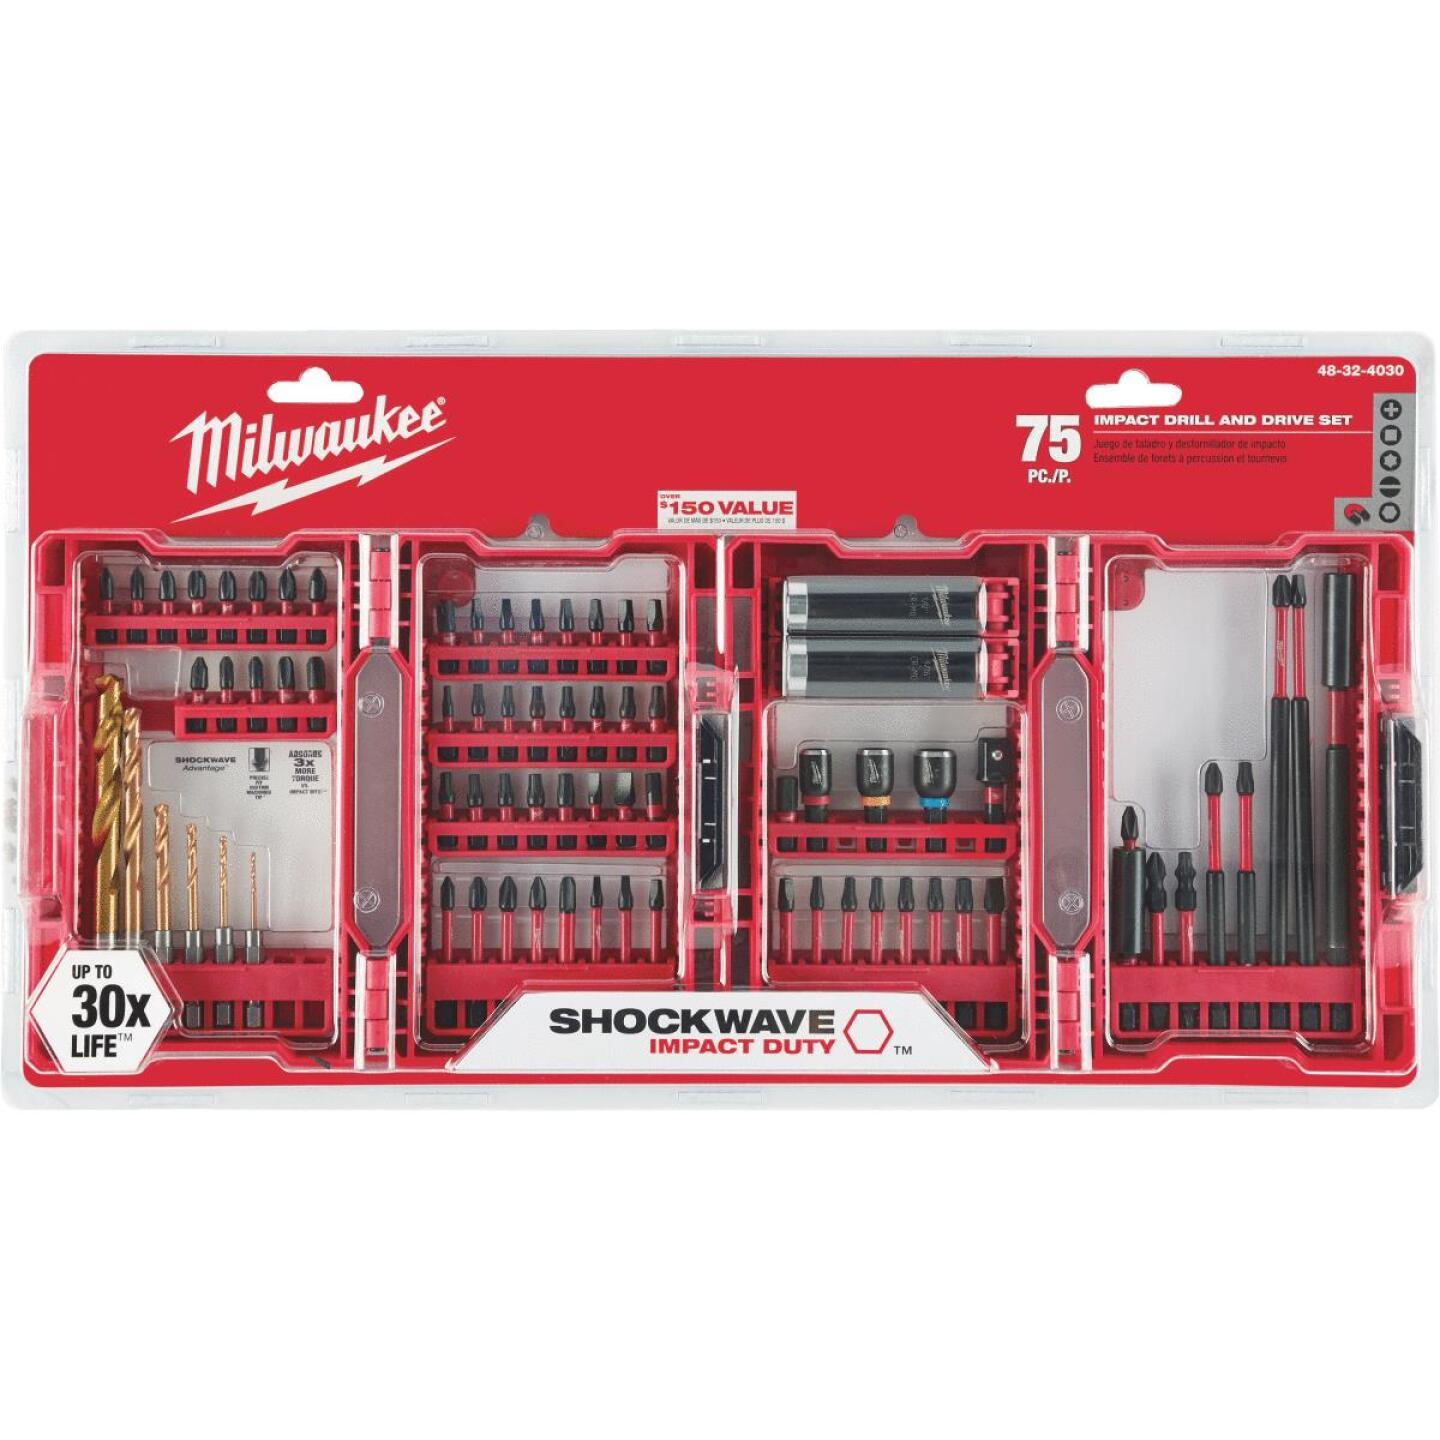 Milwaukee Shockwave 75-Piece Impact Duty Drill and Drive Set Image 2